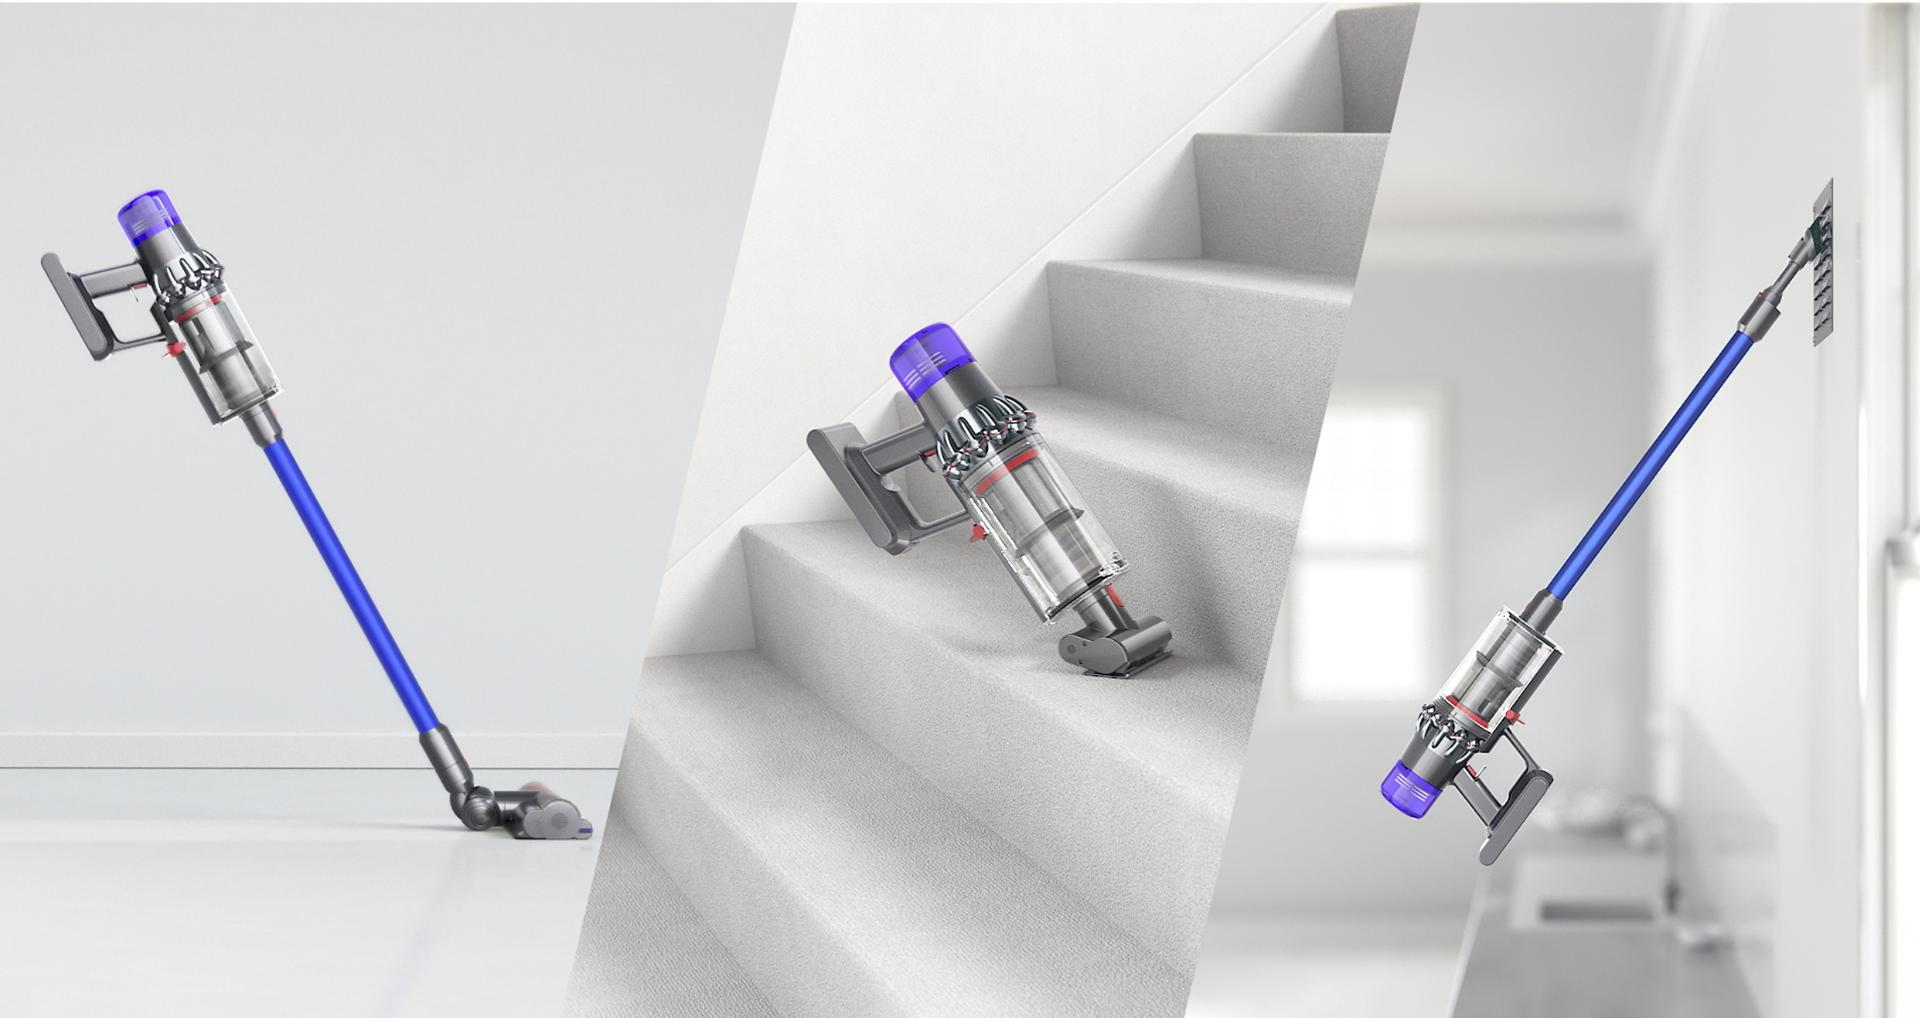 Dyson Stick vacuum being used to clean floors, stairs and vents